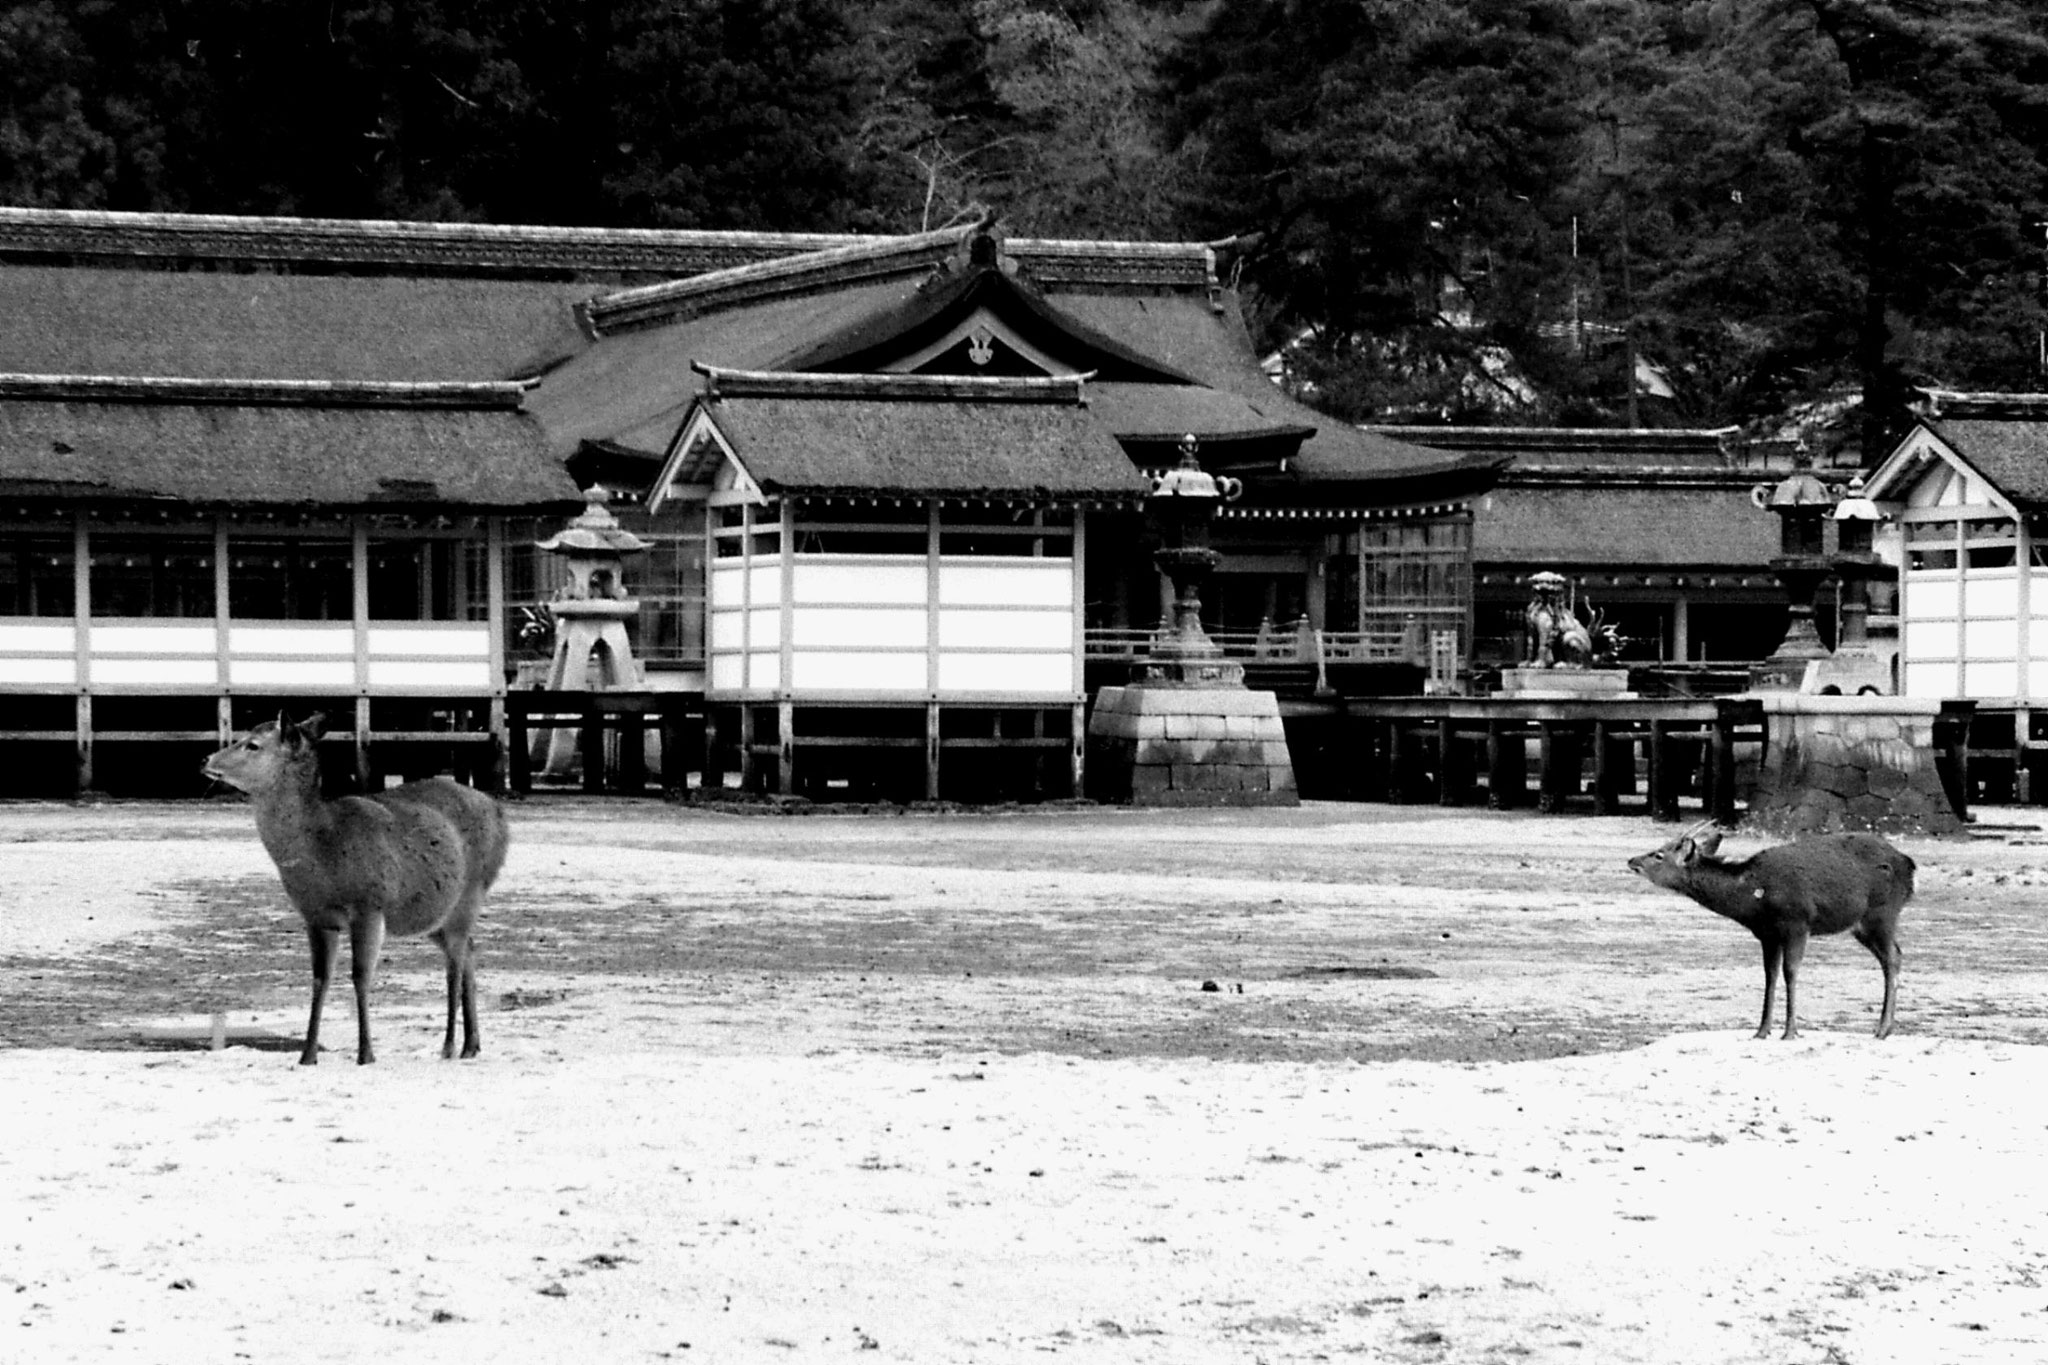 23/1/1989: 36: Itsukushima shrine